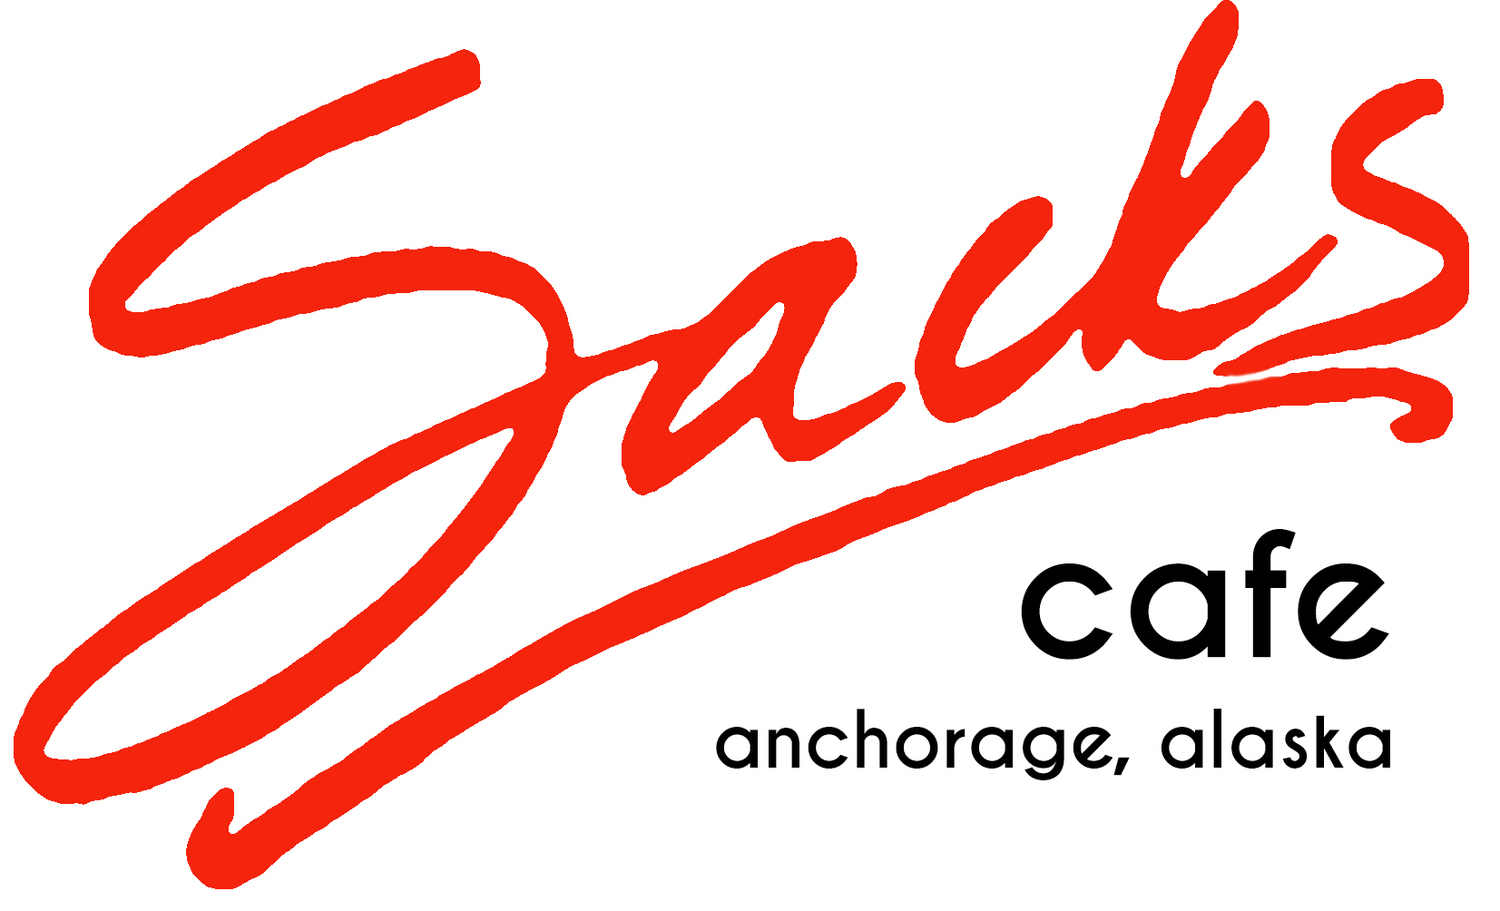 Sacks Cafe & Restaurant